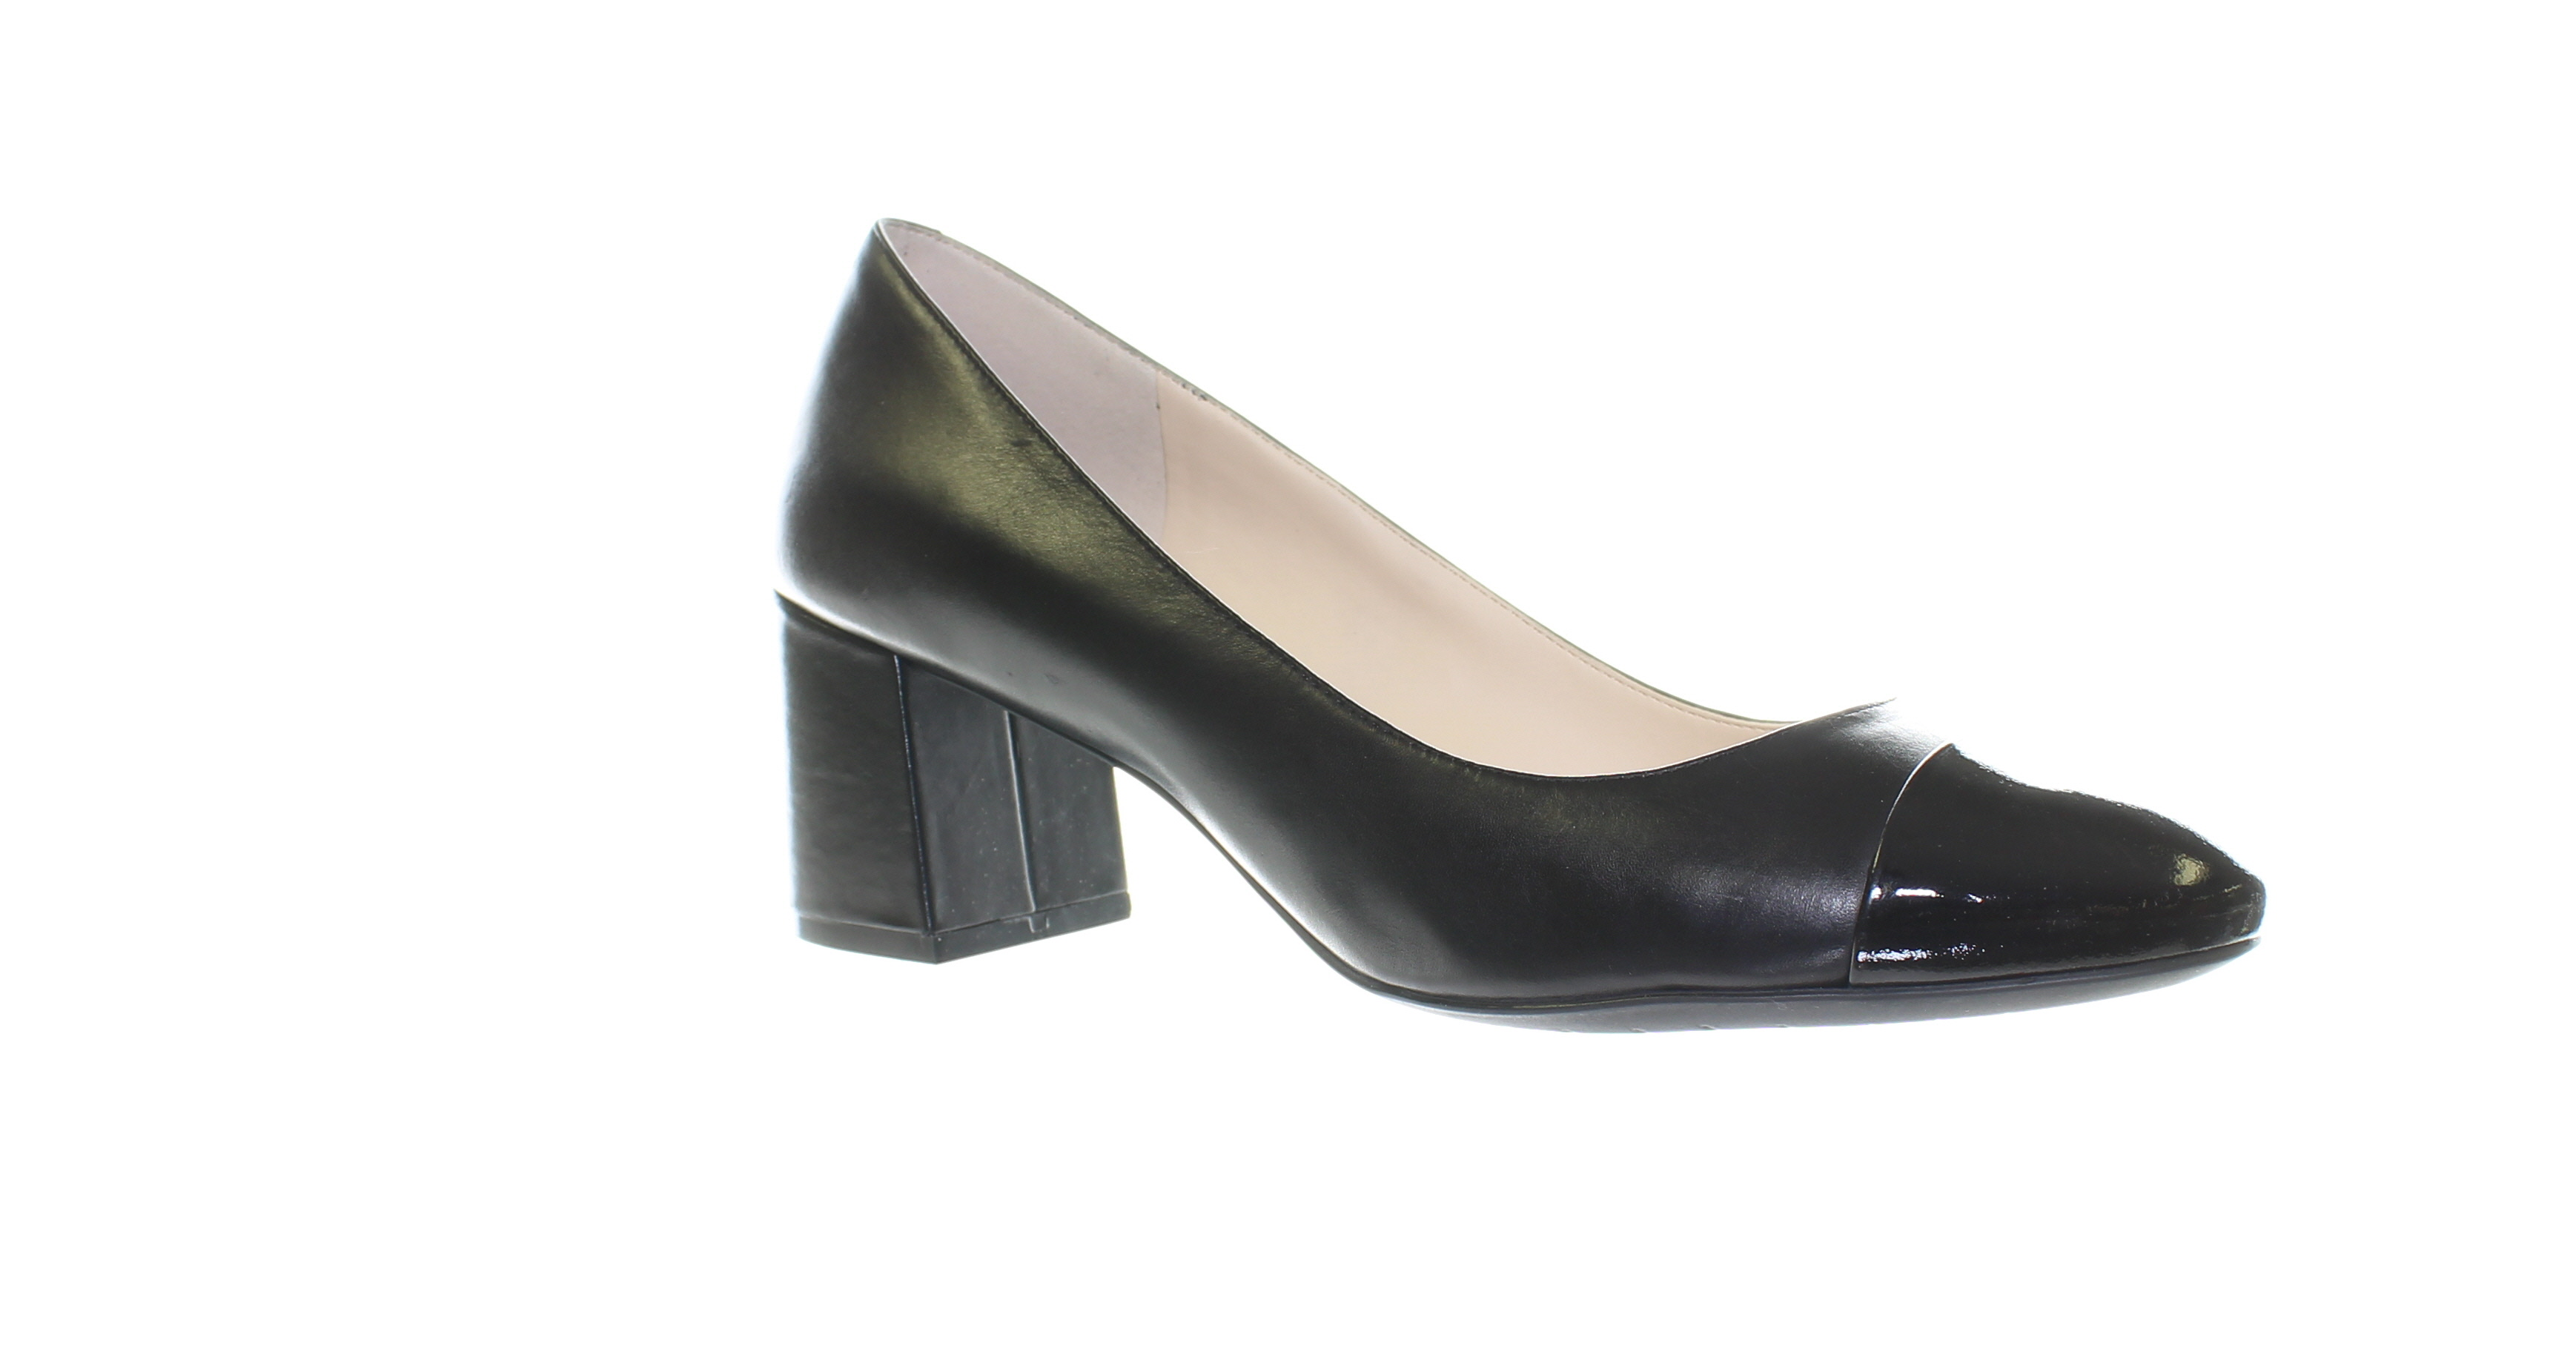 62266030a74 Details about Cole Haan Womens Dawna Black Leather/Patent Pumps Size 9  (462709)